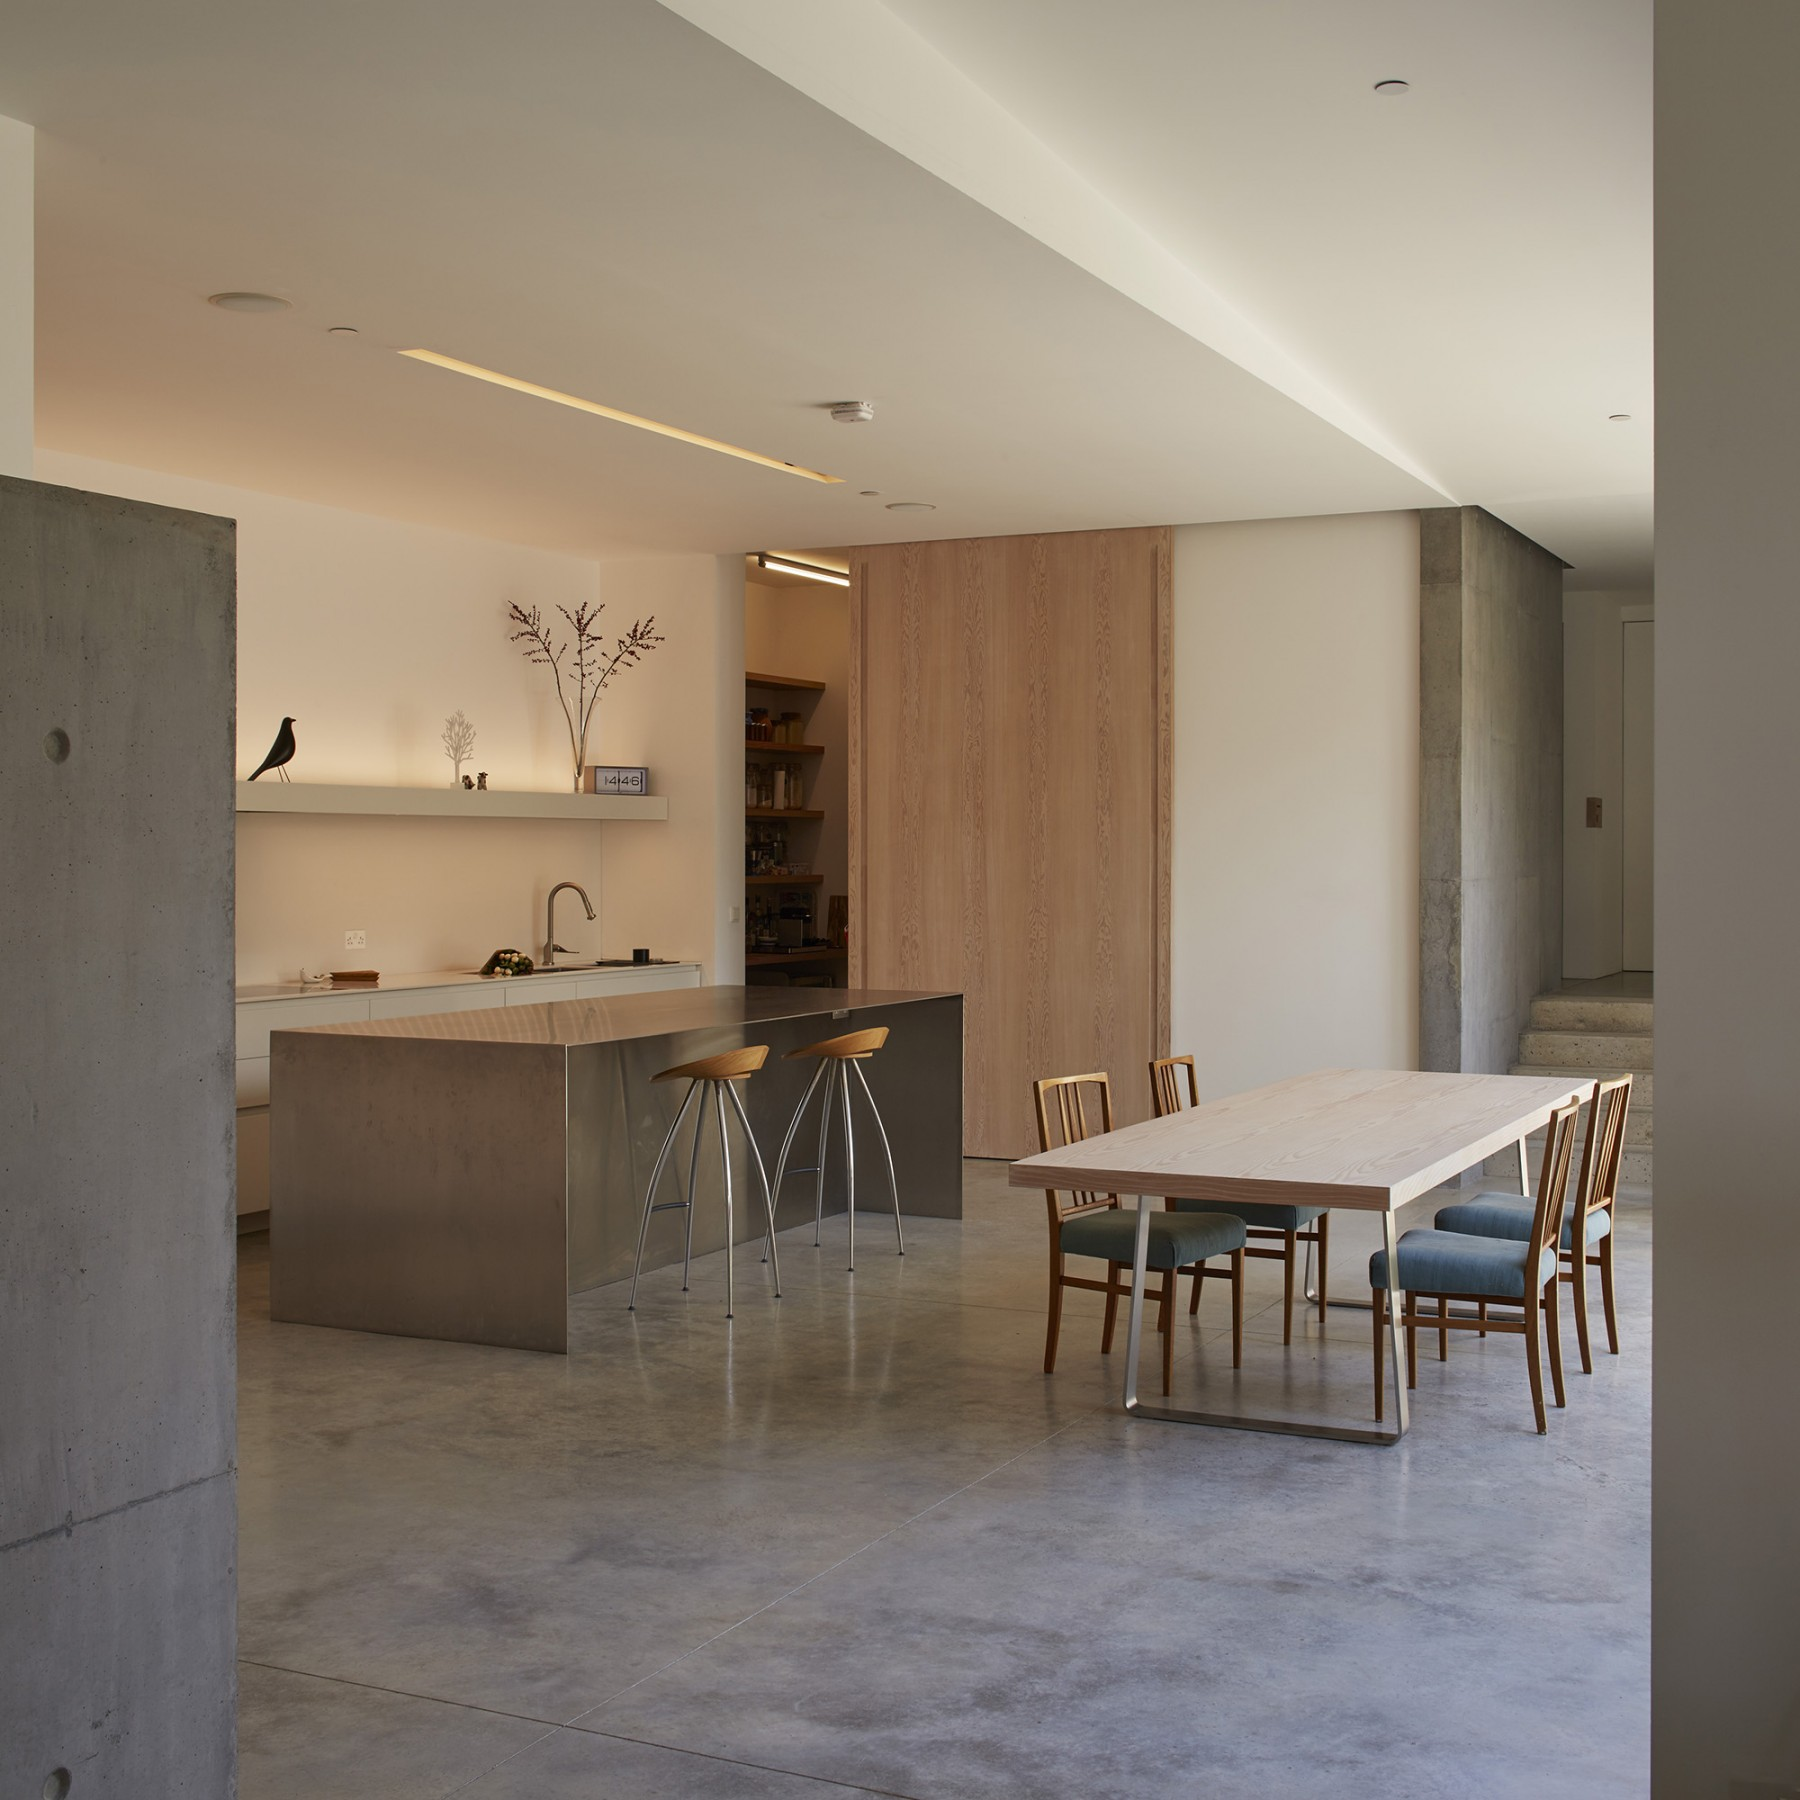 Luker-House-contemporary-modern-London-house-Barnes-Jamie-Fobert-Architects-RIBA-Award-Kitchen-Concrete (3)1